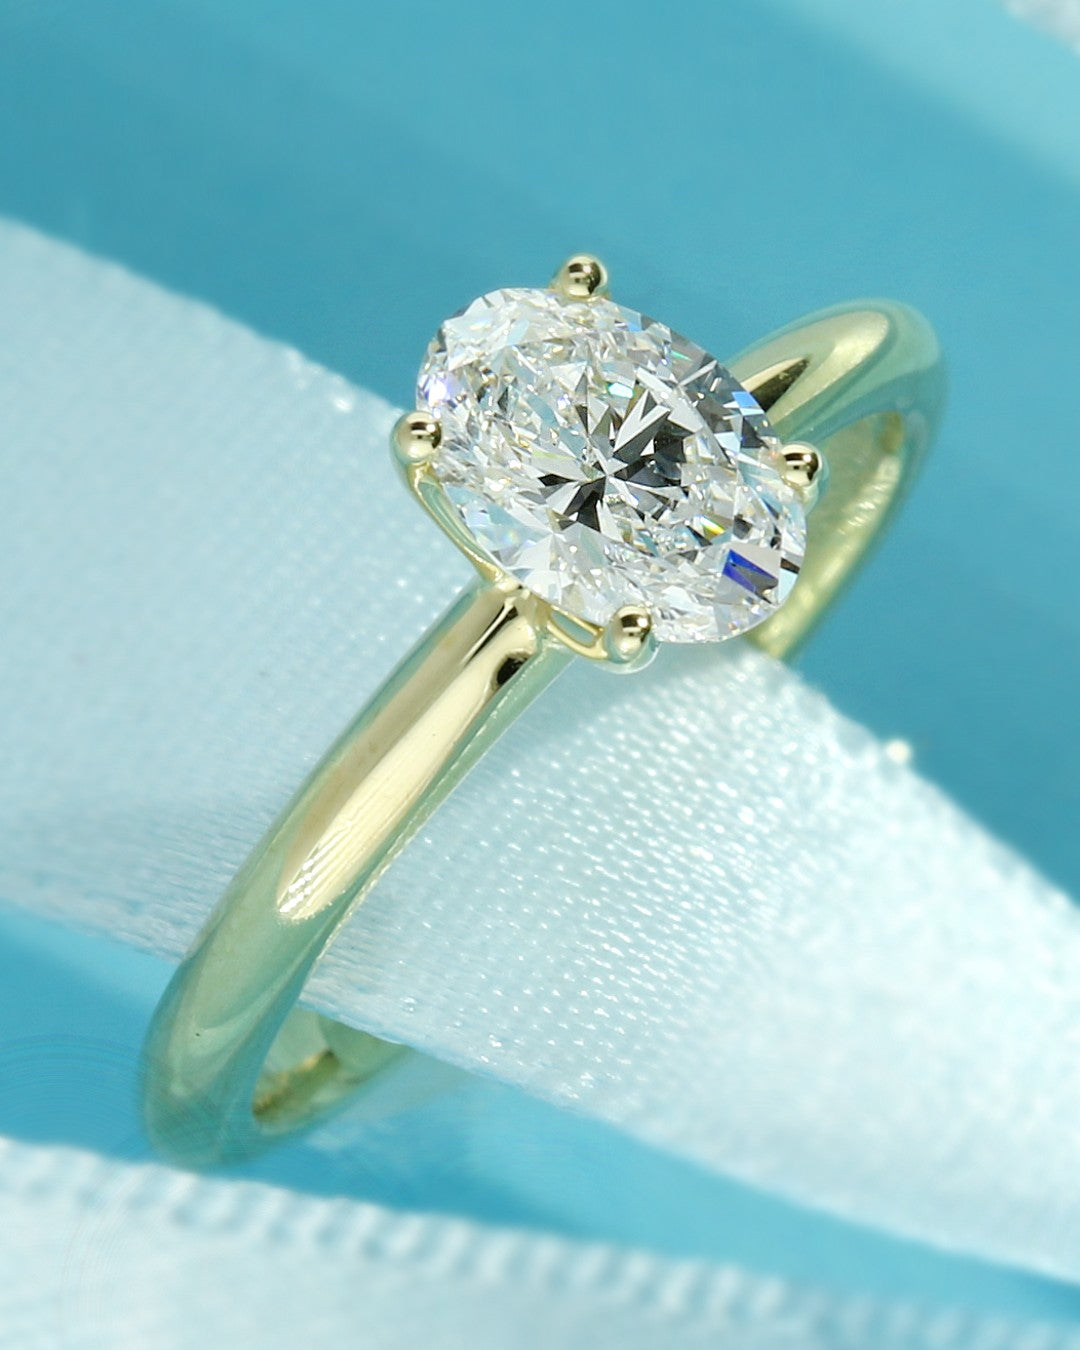 Yellow gold solitaire engagement ring set with an oval lab grown diamond